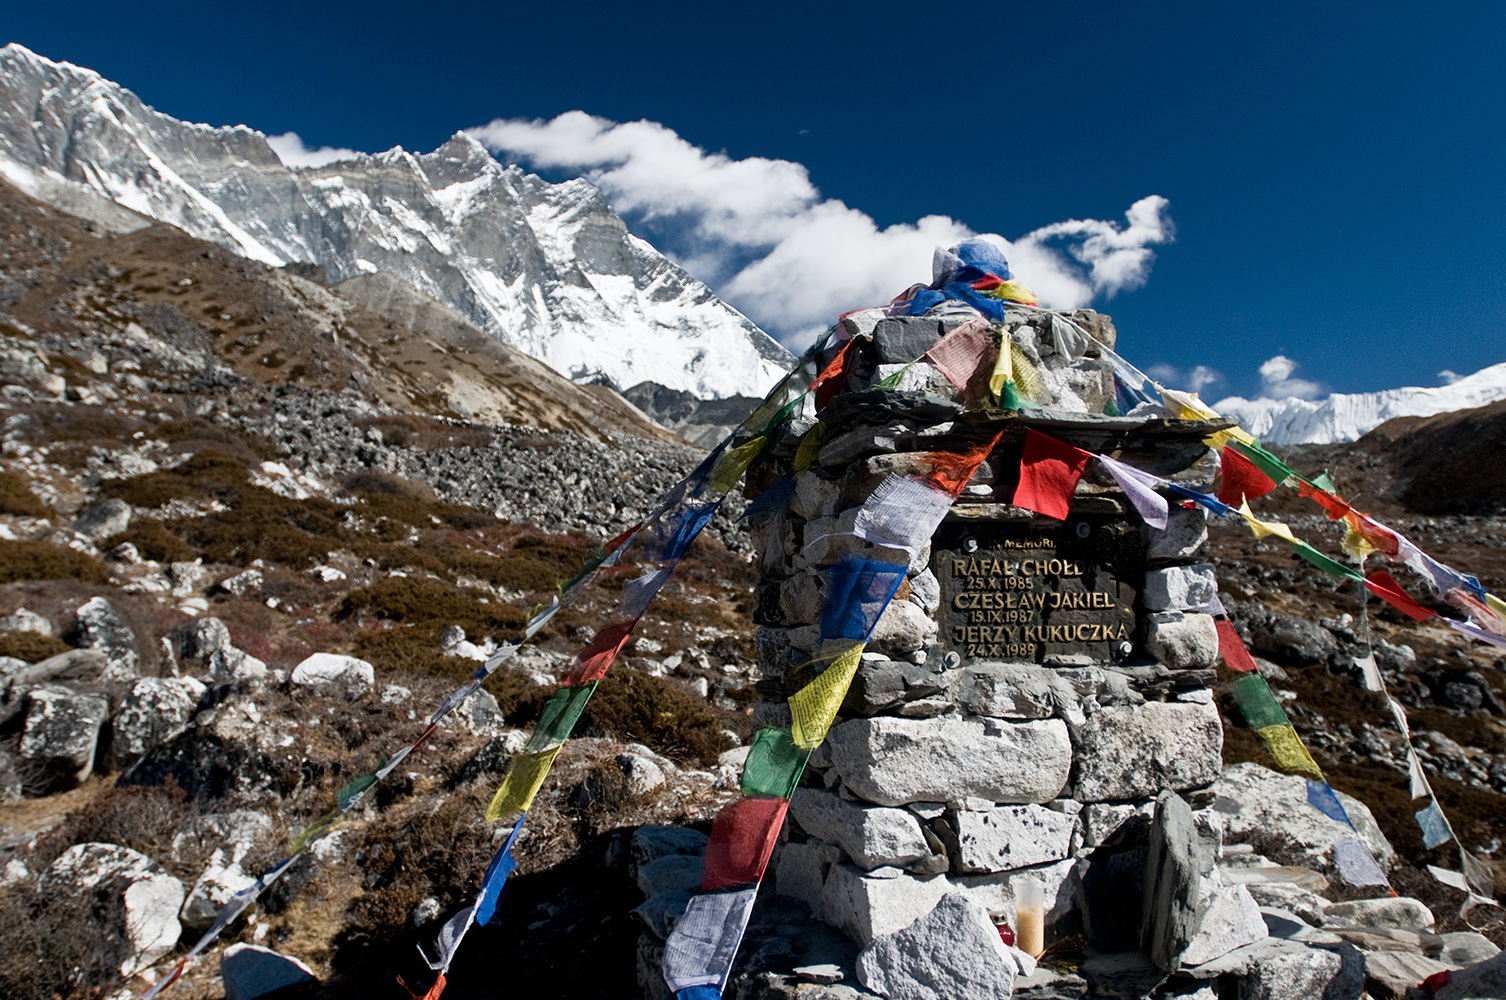 Above Chhukung, beneath the immense, brooding mass of the south wall of Lhotse, is this memorial to three Polish climbers who perished in separate accidents on the mountain. Rafal Cholda,  Czeslaw Jakiel and Jerzy Kukuczka. Kukuczka was the second person to summit all 14 of the world's 8000m peaks, after Reinhold Messner. He also climber four 8000m peaks in winter and made the first ascent, in Alpine Style, of a new route on K2 (with Tadeusz Piotrowski) which has never been repeated. He was a hard man! Respect. RIP.Nikon D300, 17-35mm. November 2008